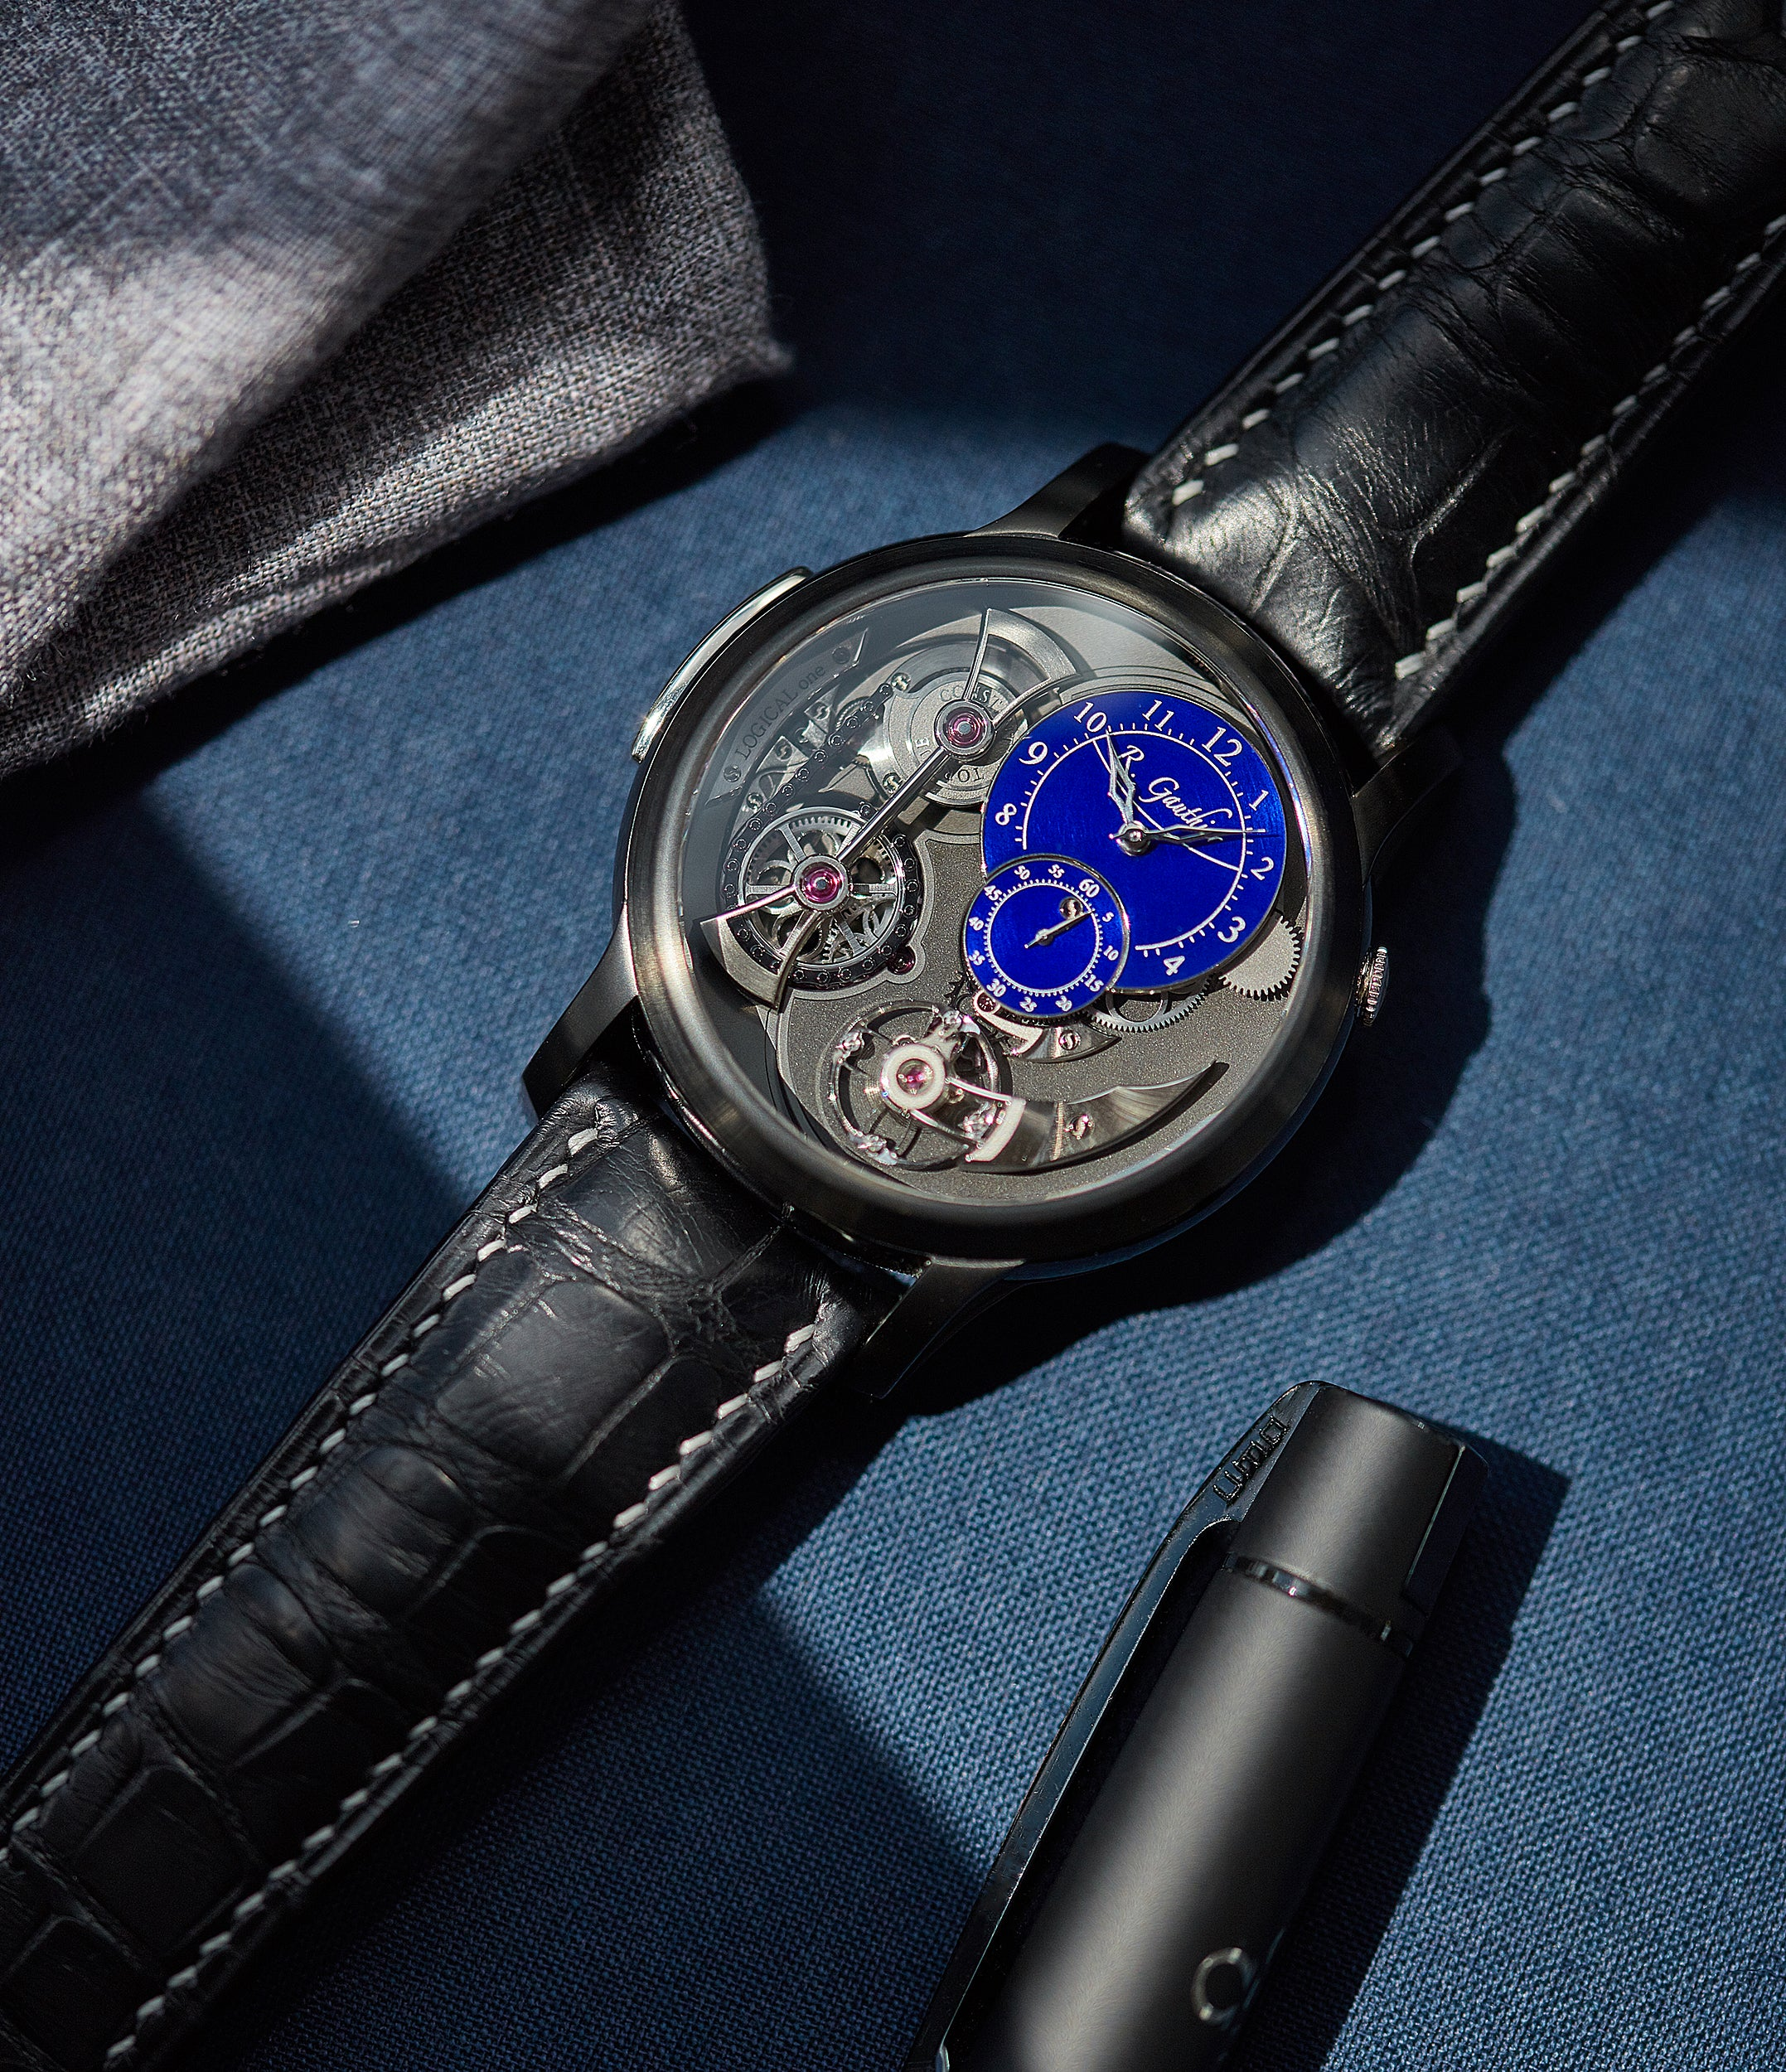 rare Romain Gauthier Limited Edition Logical One BTG titanium watch blue enamel dial for sale online at A Collected Man London UK specialist of independent watchmakers